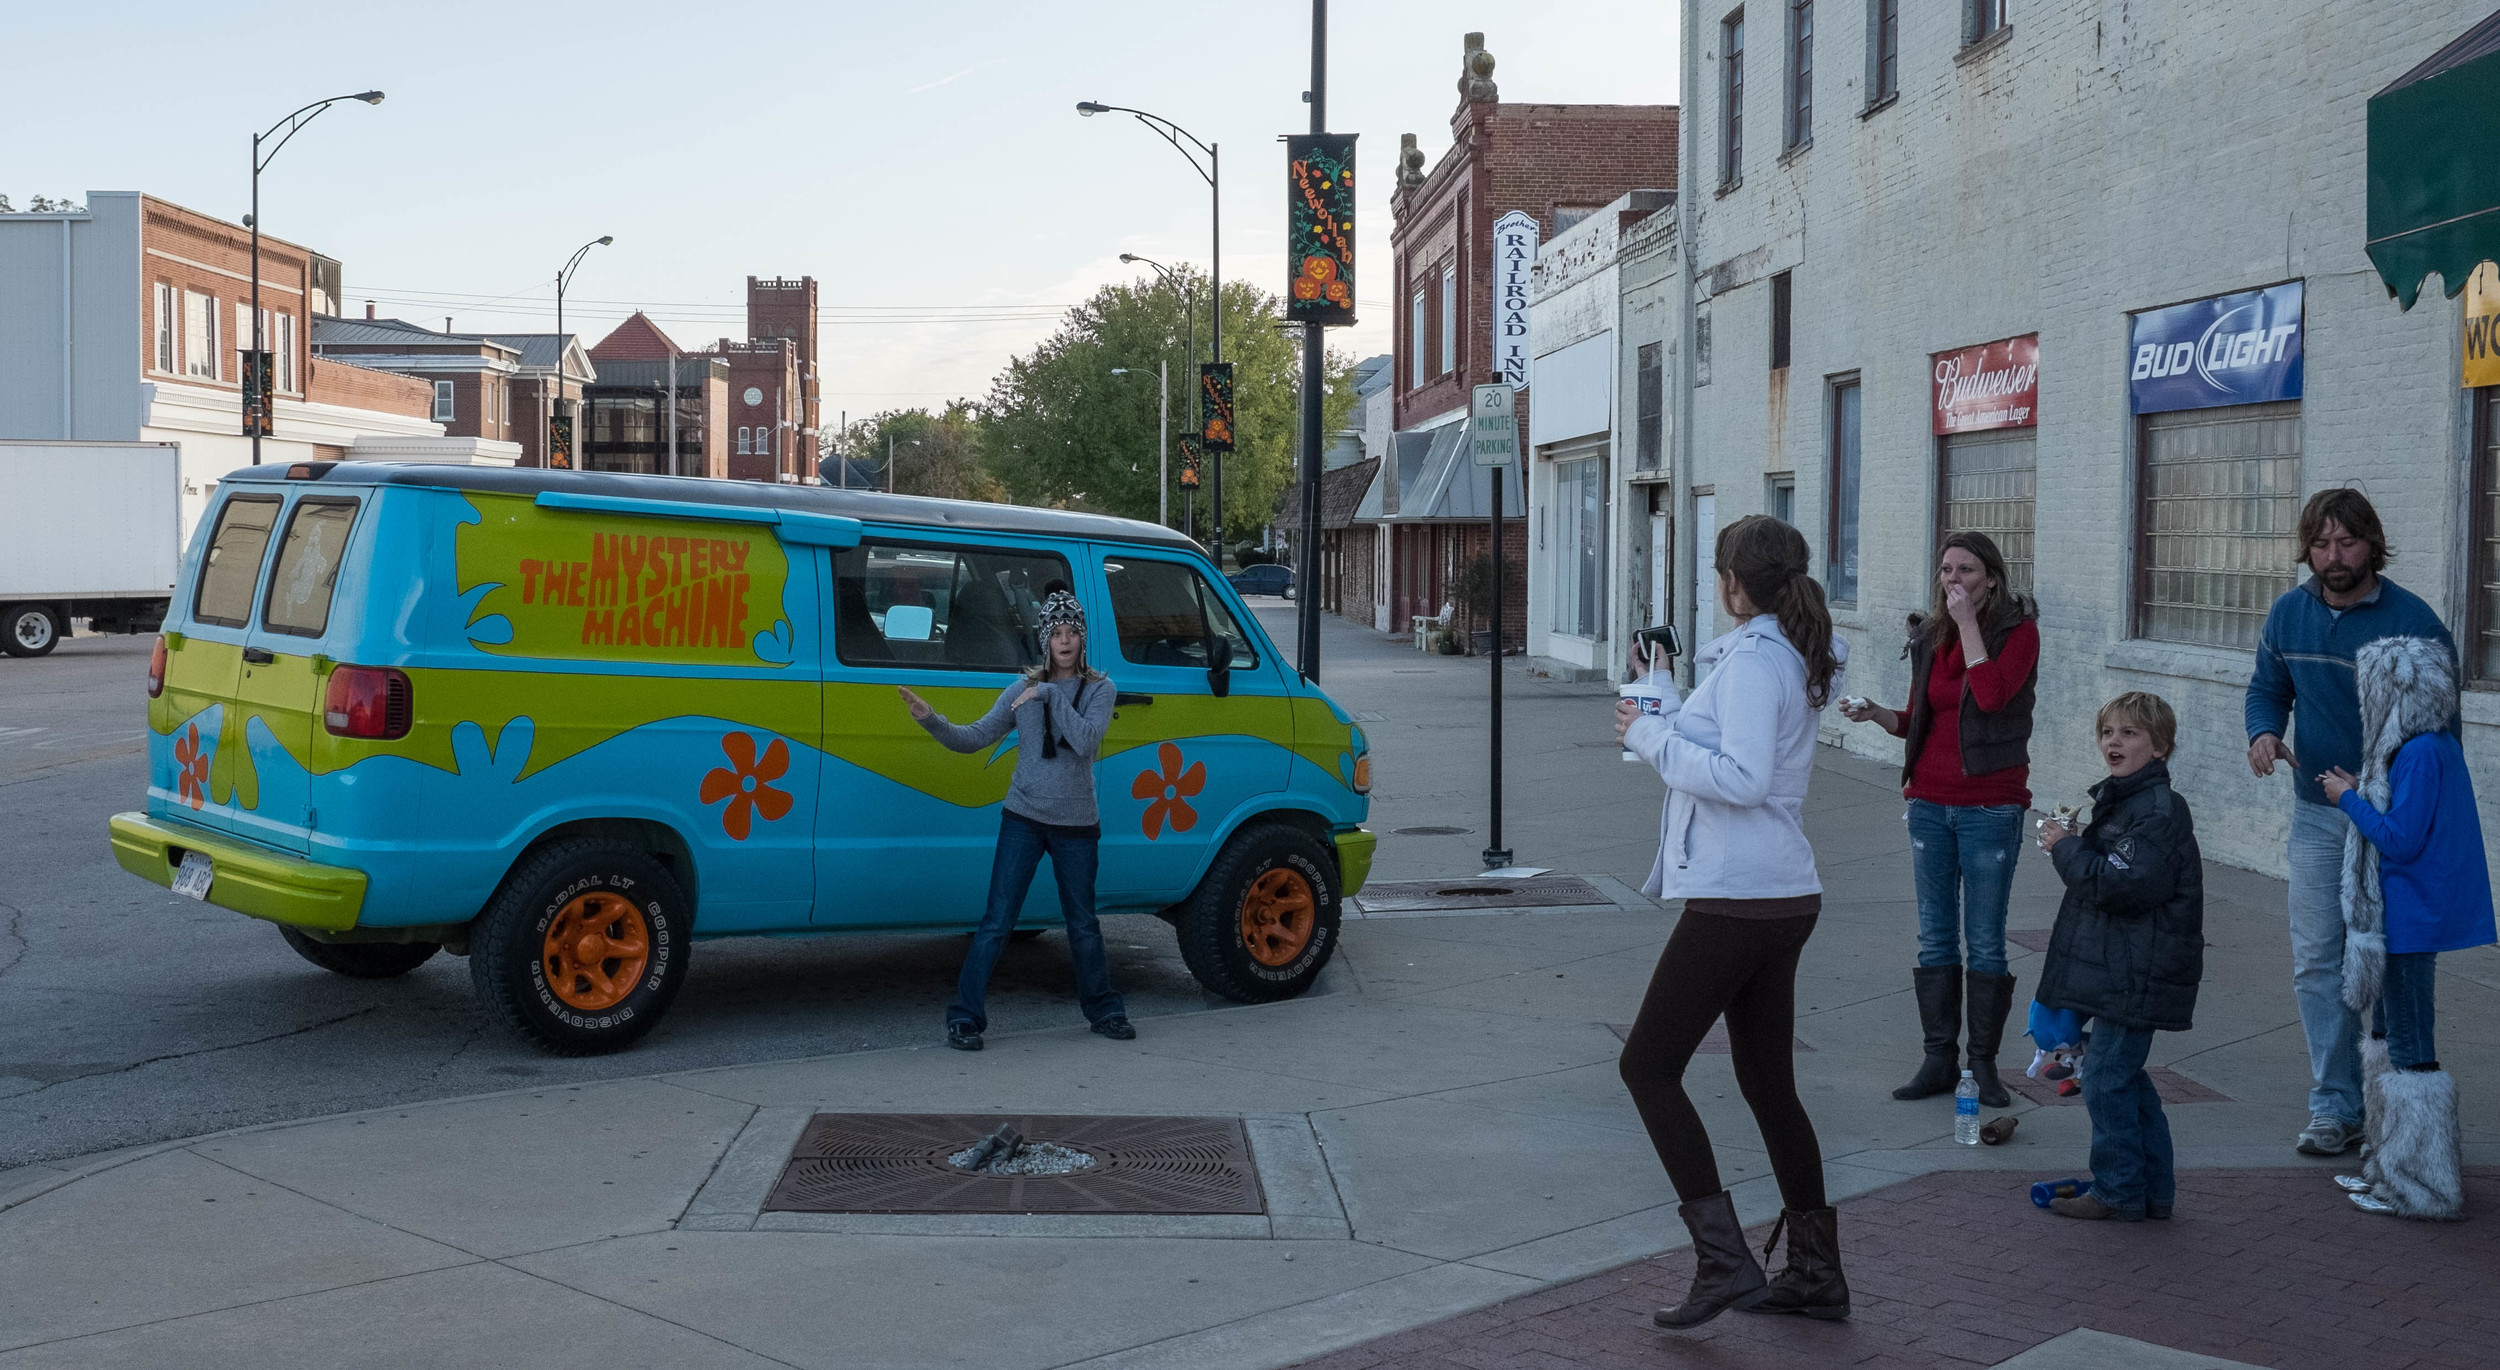 One thing I didn't think I would see in Independence was The Mystery Machine from Scooby Doo.  Apparently everyone else thought the same thing and had to get a picture of it as well.